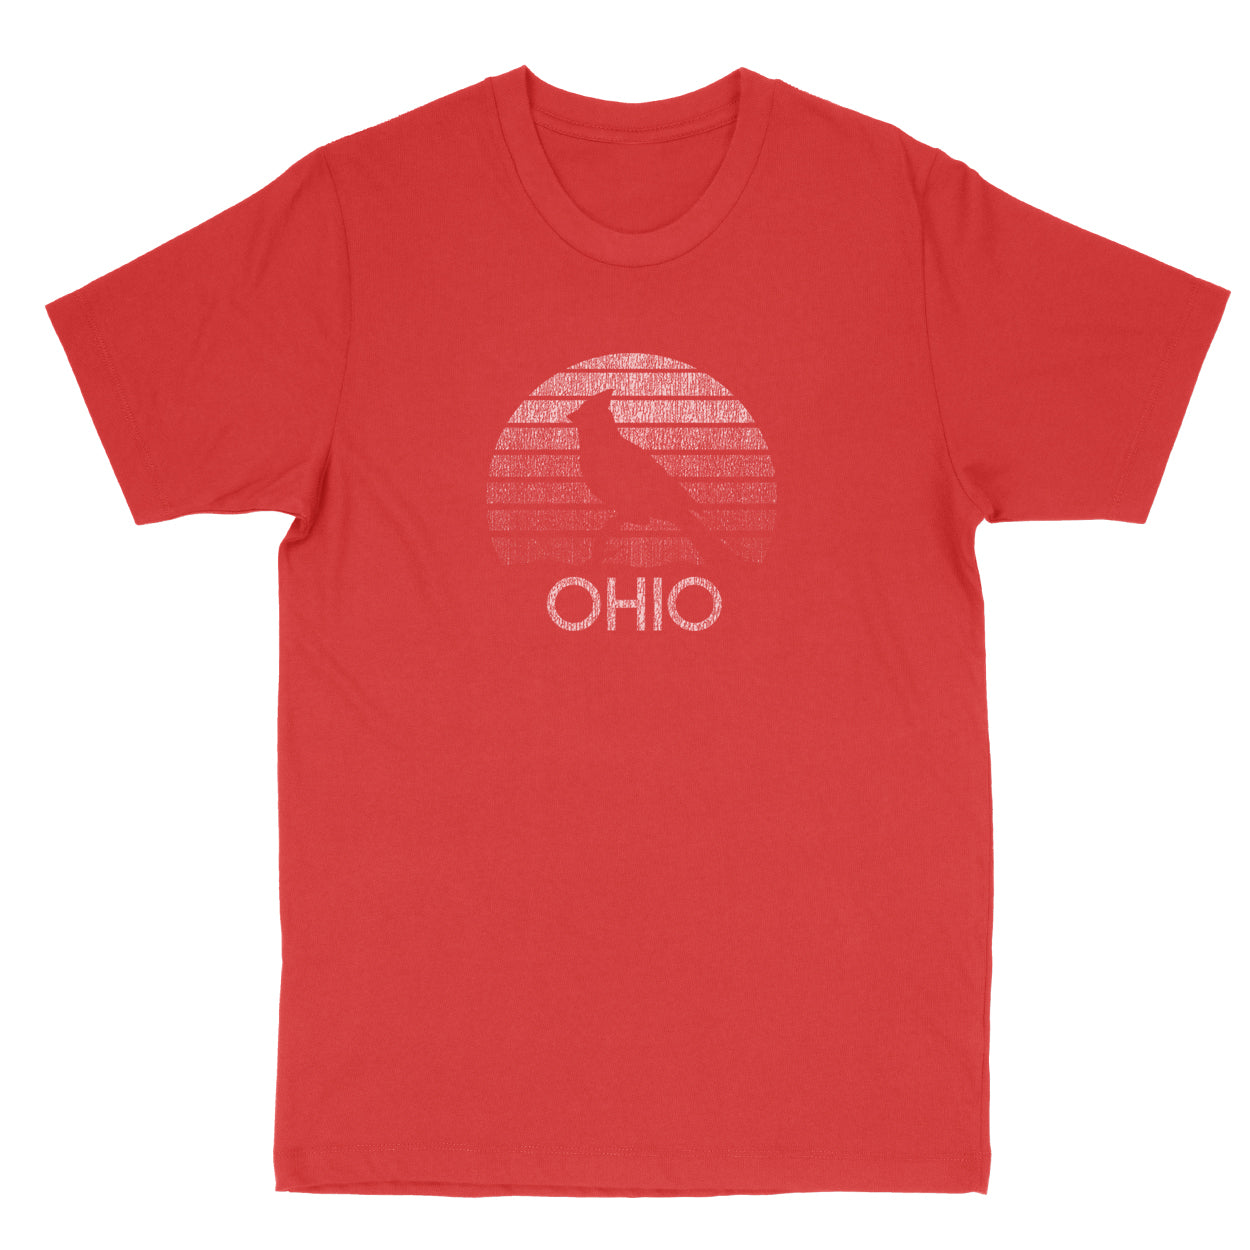 Ohio Sunset Men's T-Shirt - Clothe Ohio - Soft Ohio Shirts